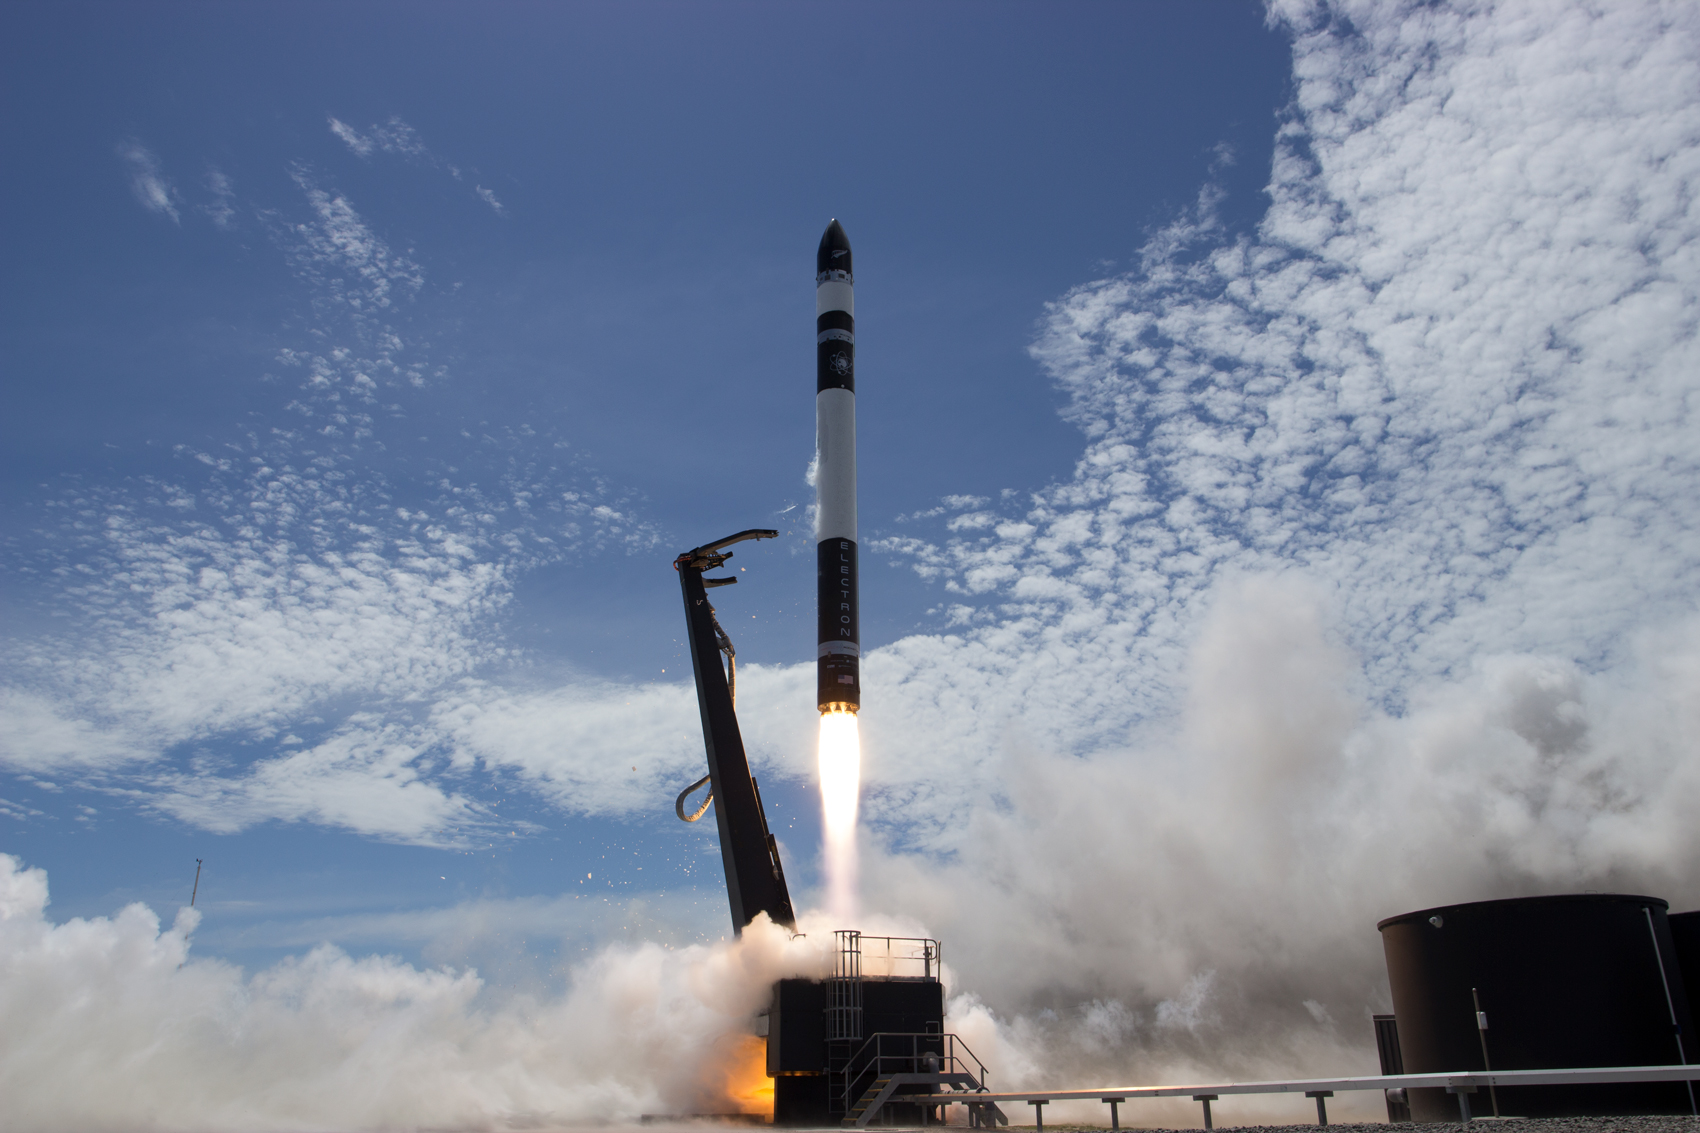 A look at the Electron Rocket as it launches from the New Zealand-based launch pad on Saturday.